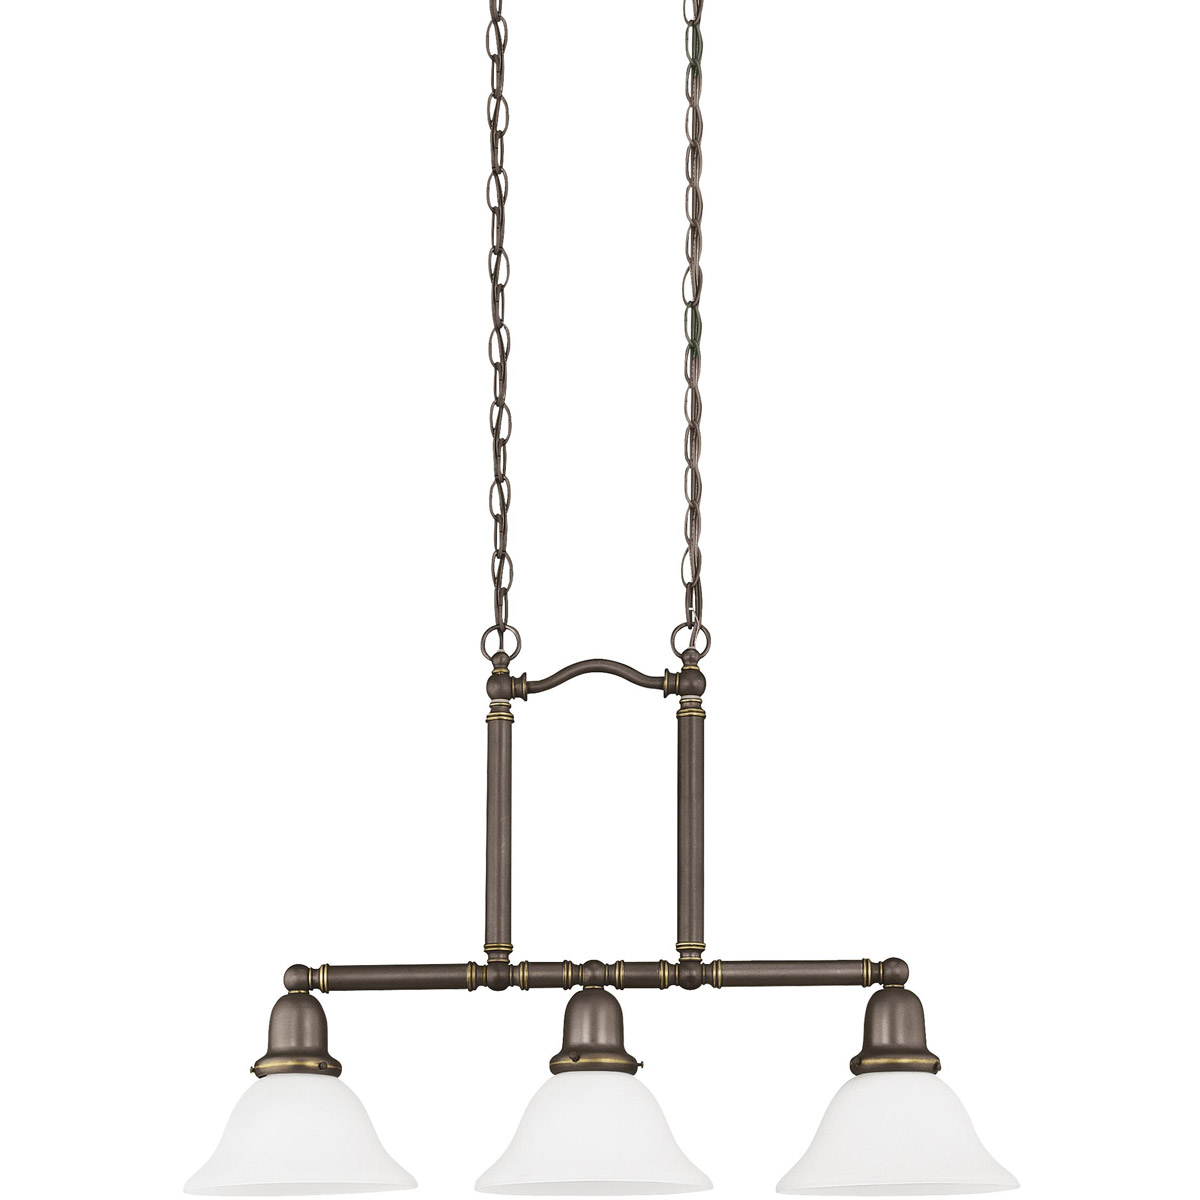 Sea Gull Lighting Sussex 3 Light Pendant in Heirloom Bronze 66061-782